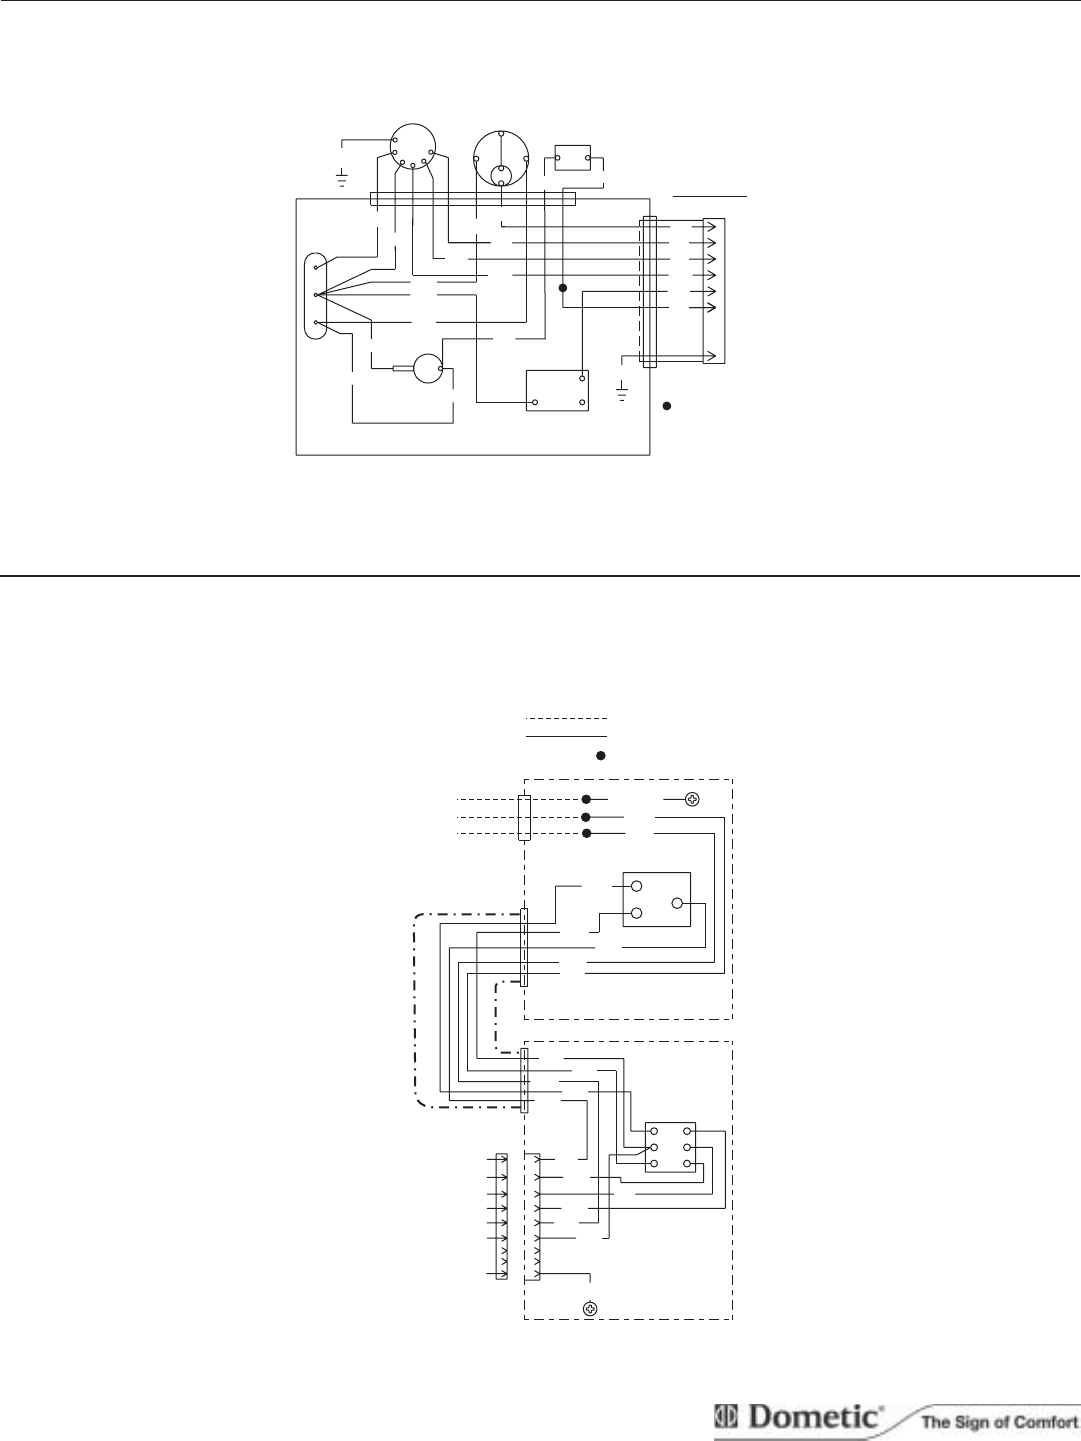 Wiring Diagram For Fridge Thermostat : Dometic three wire thermostat wiring diagram get